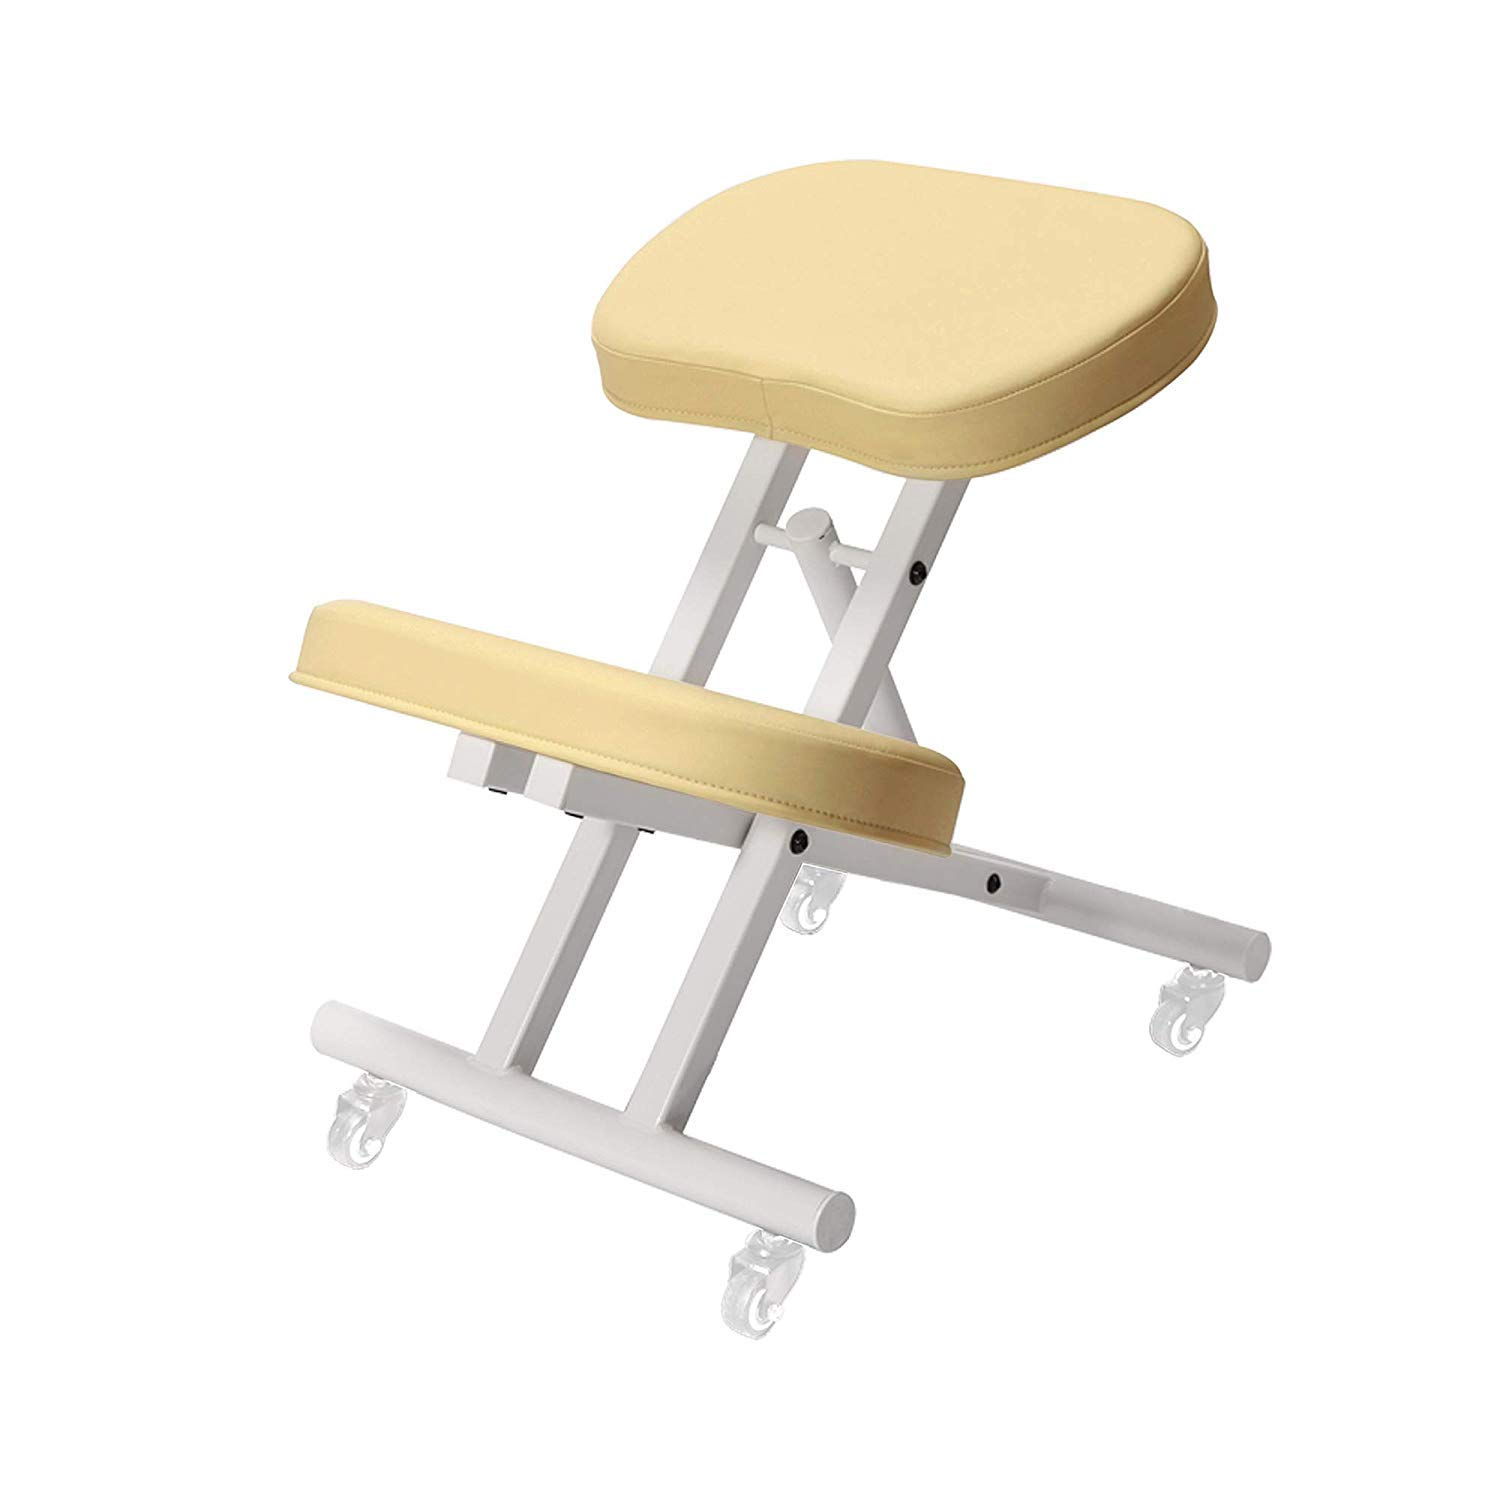 Master Massage Ergonomic Steel Kneeling Chair Posture Thick Cushion Seat Office and Home Rolling Adjustable Cream Color